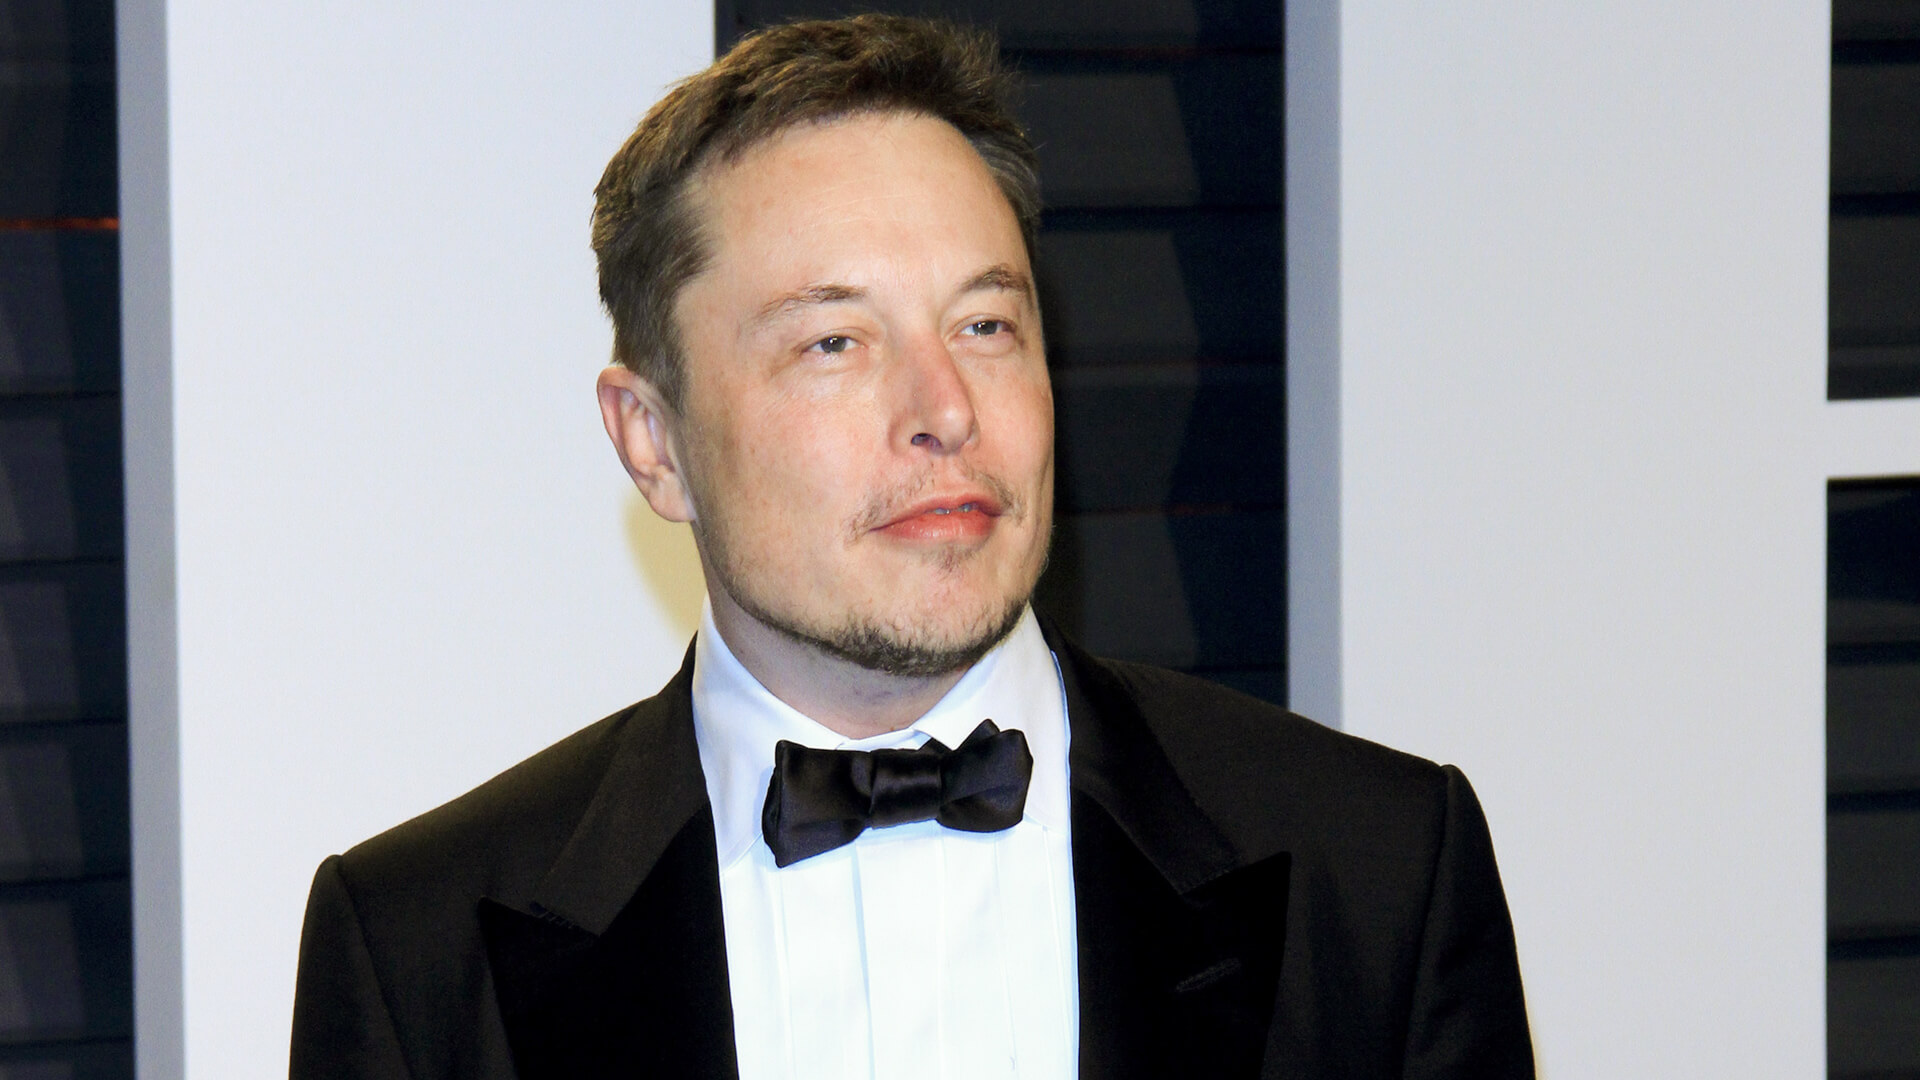 Elon Musk's Controversial 2020: From Comments on Stay-at-Home Orders to His New Baby's Name and More